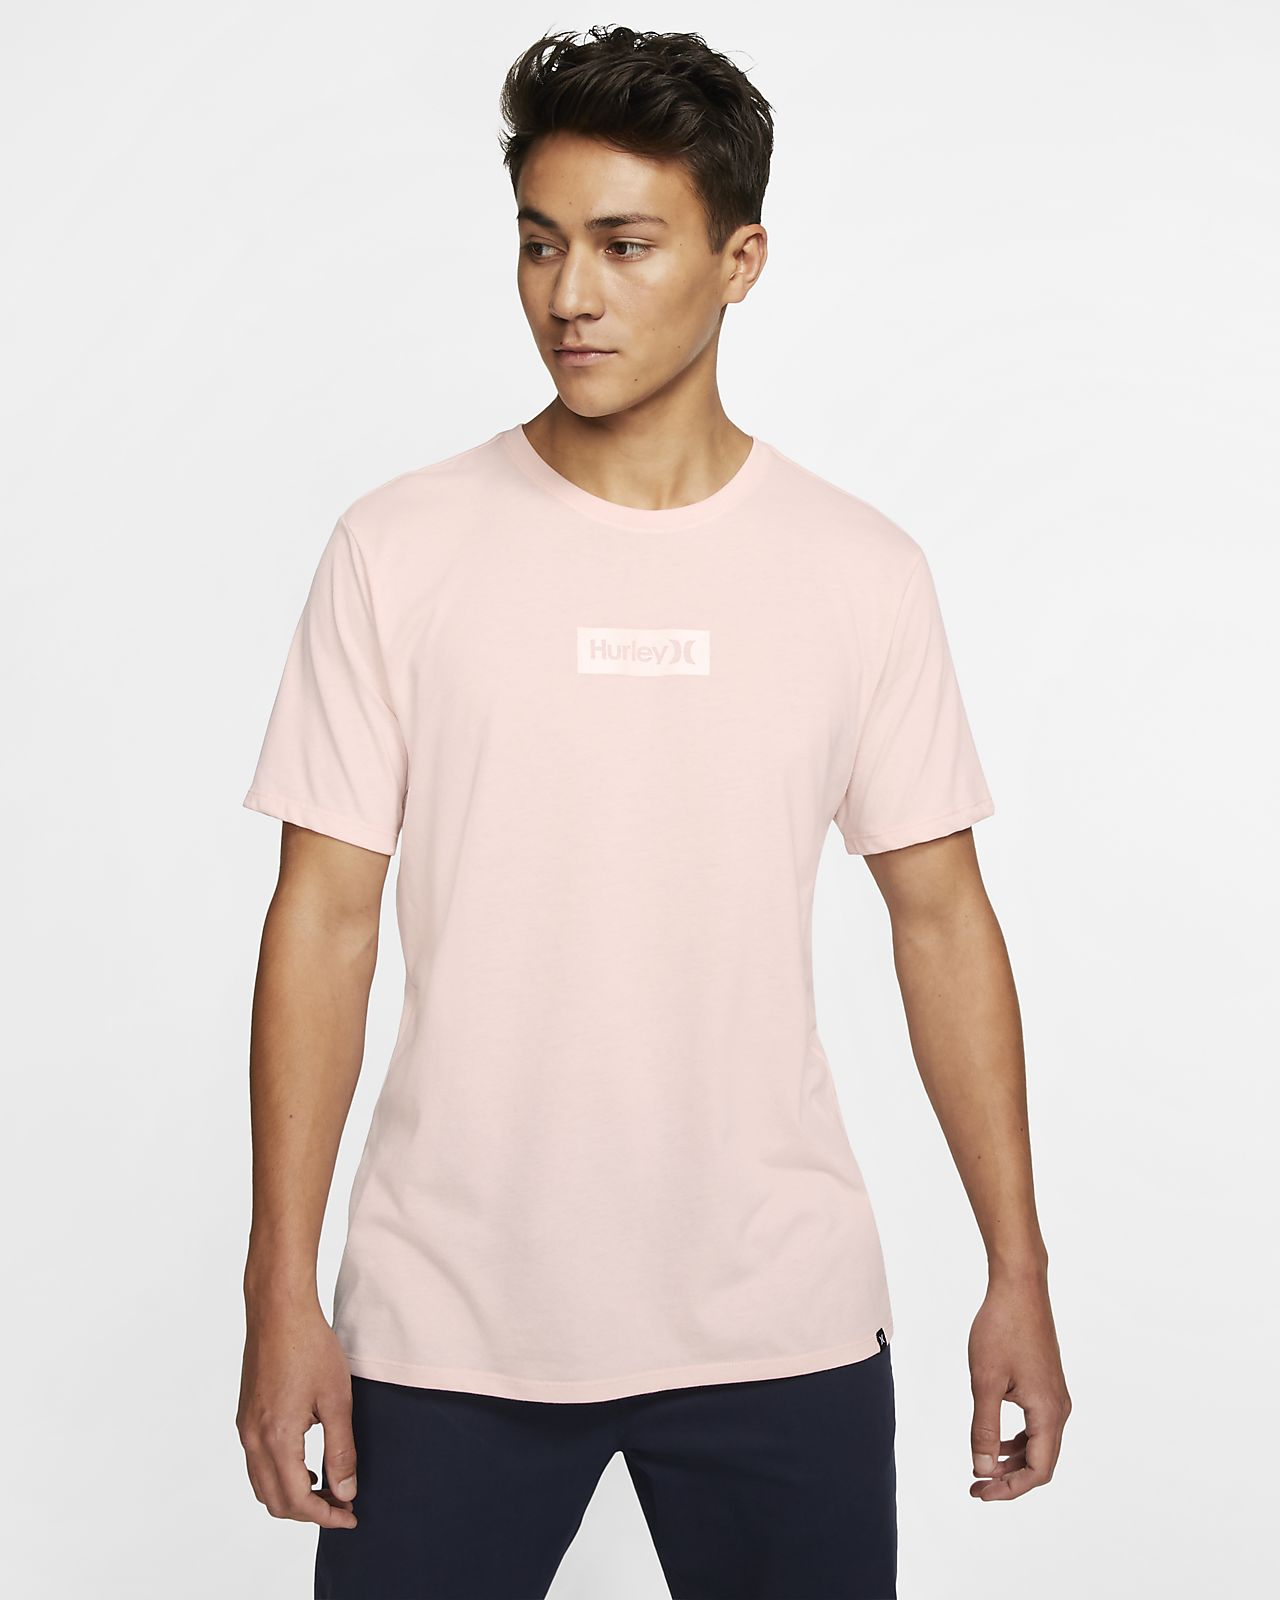 Hurley Dri-FIT One And Only Small Box Samarreta - Home